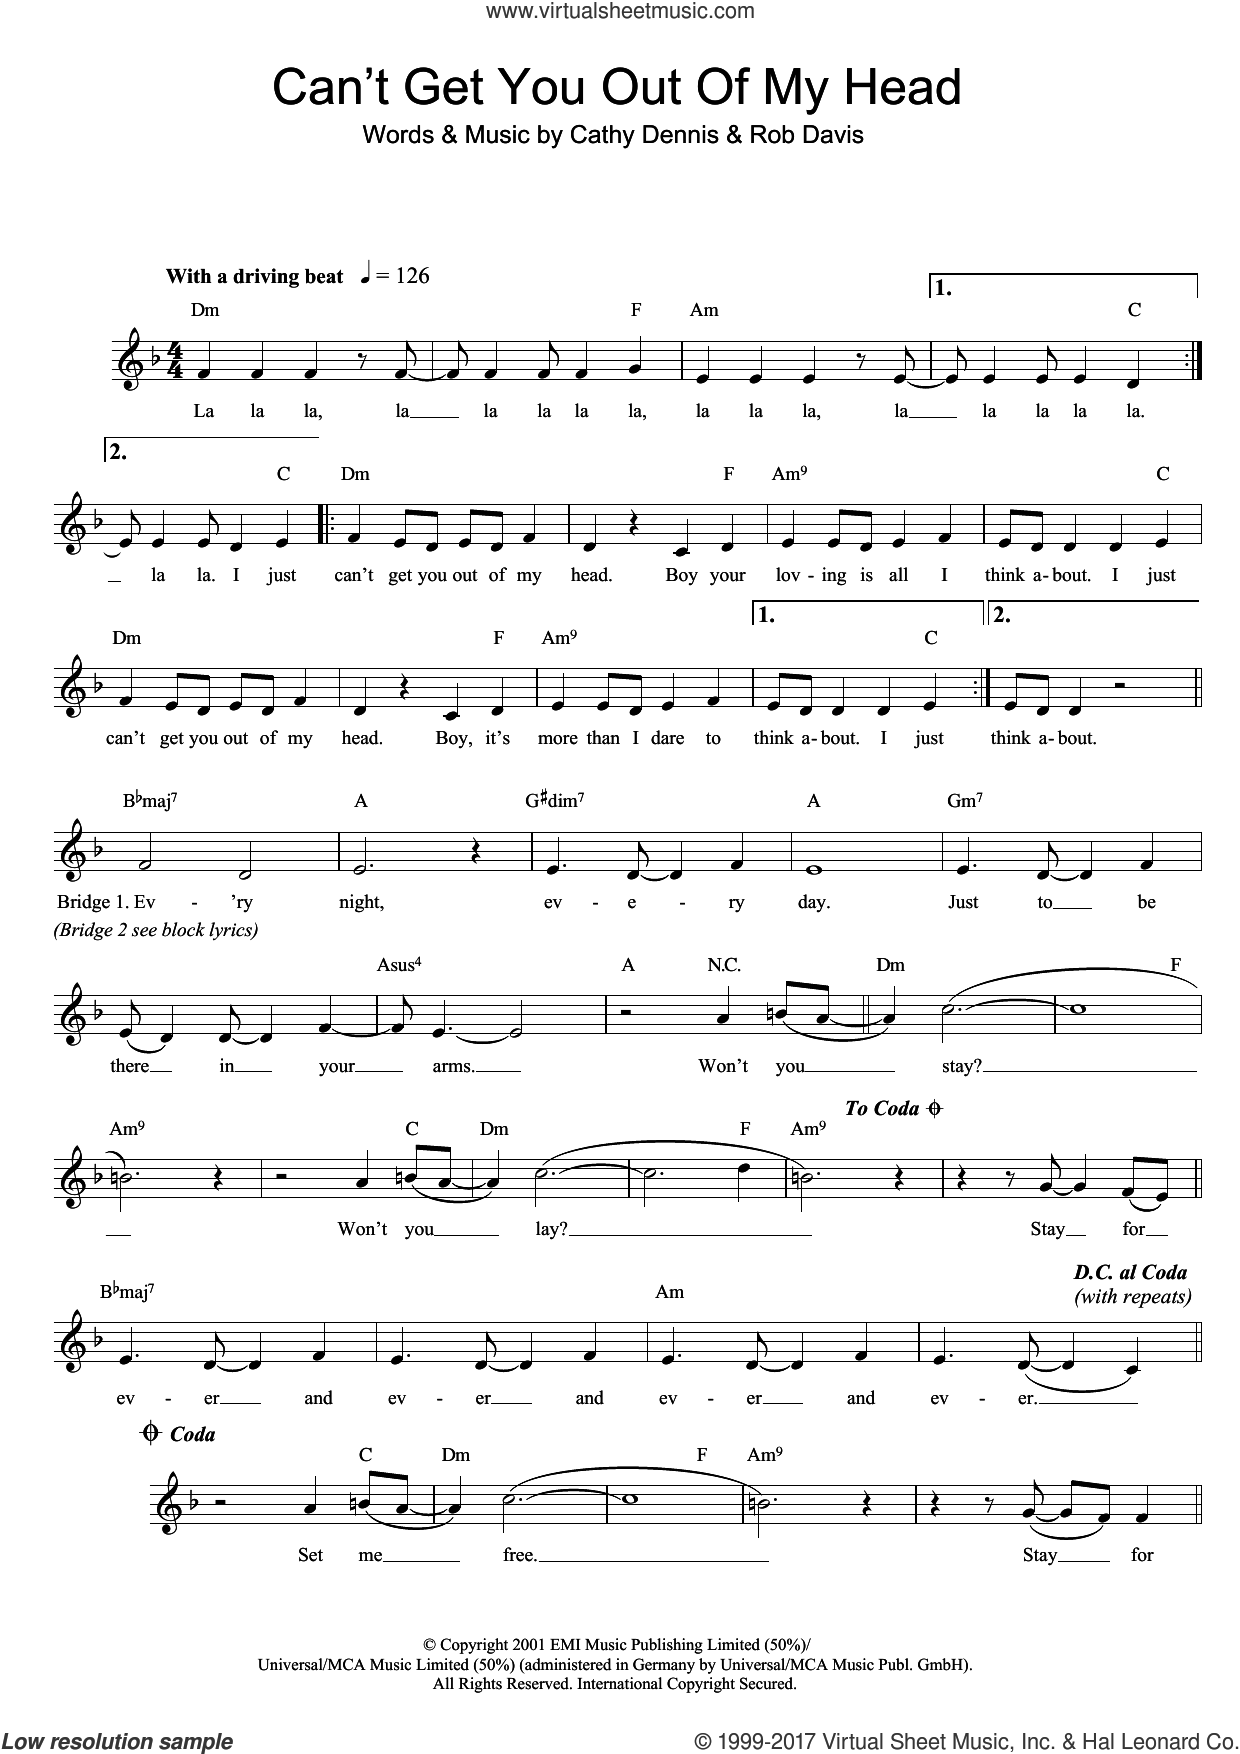 Can't Get You Out Of My Head sheet music for voice and other instruments (fake book) by Kylie Minogue, Cathy Dennis and Rob Davis, intermediate skill level